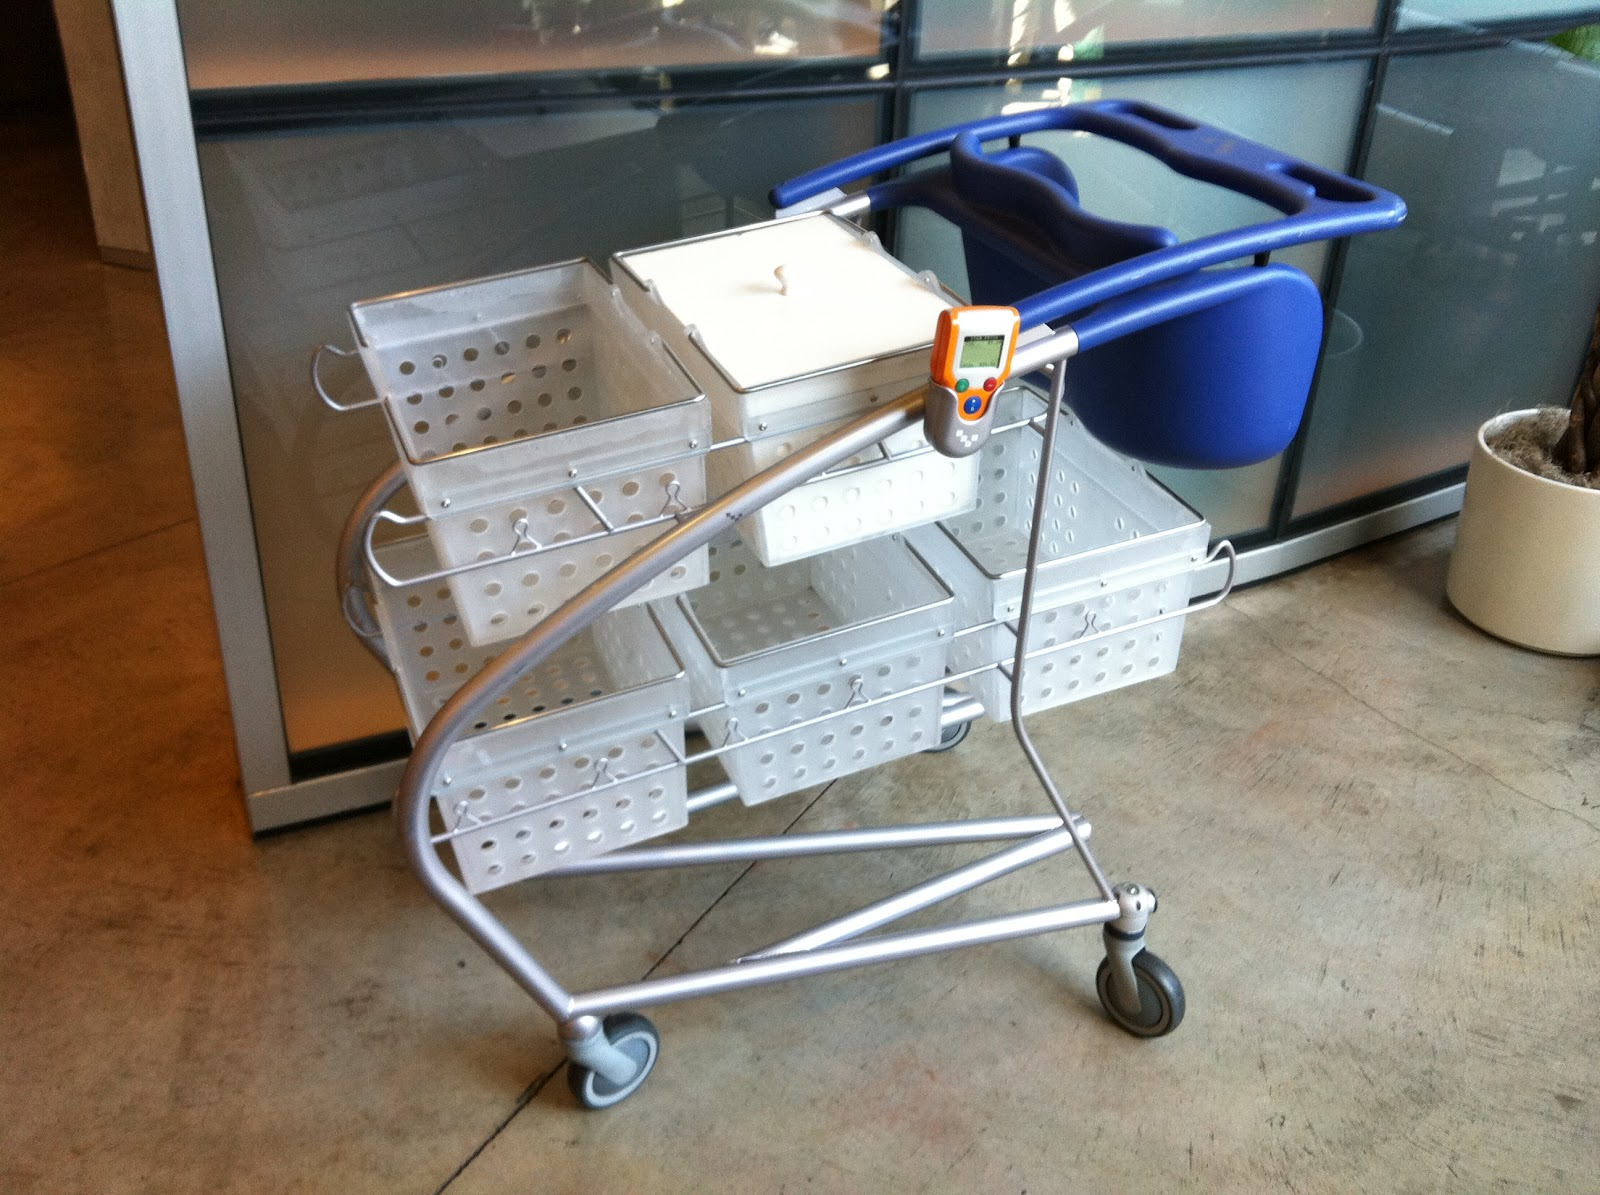 IDEO's redesign of the Shopping Cart | TAMAR SAMIR